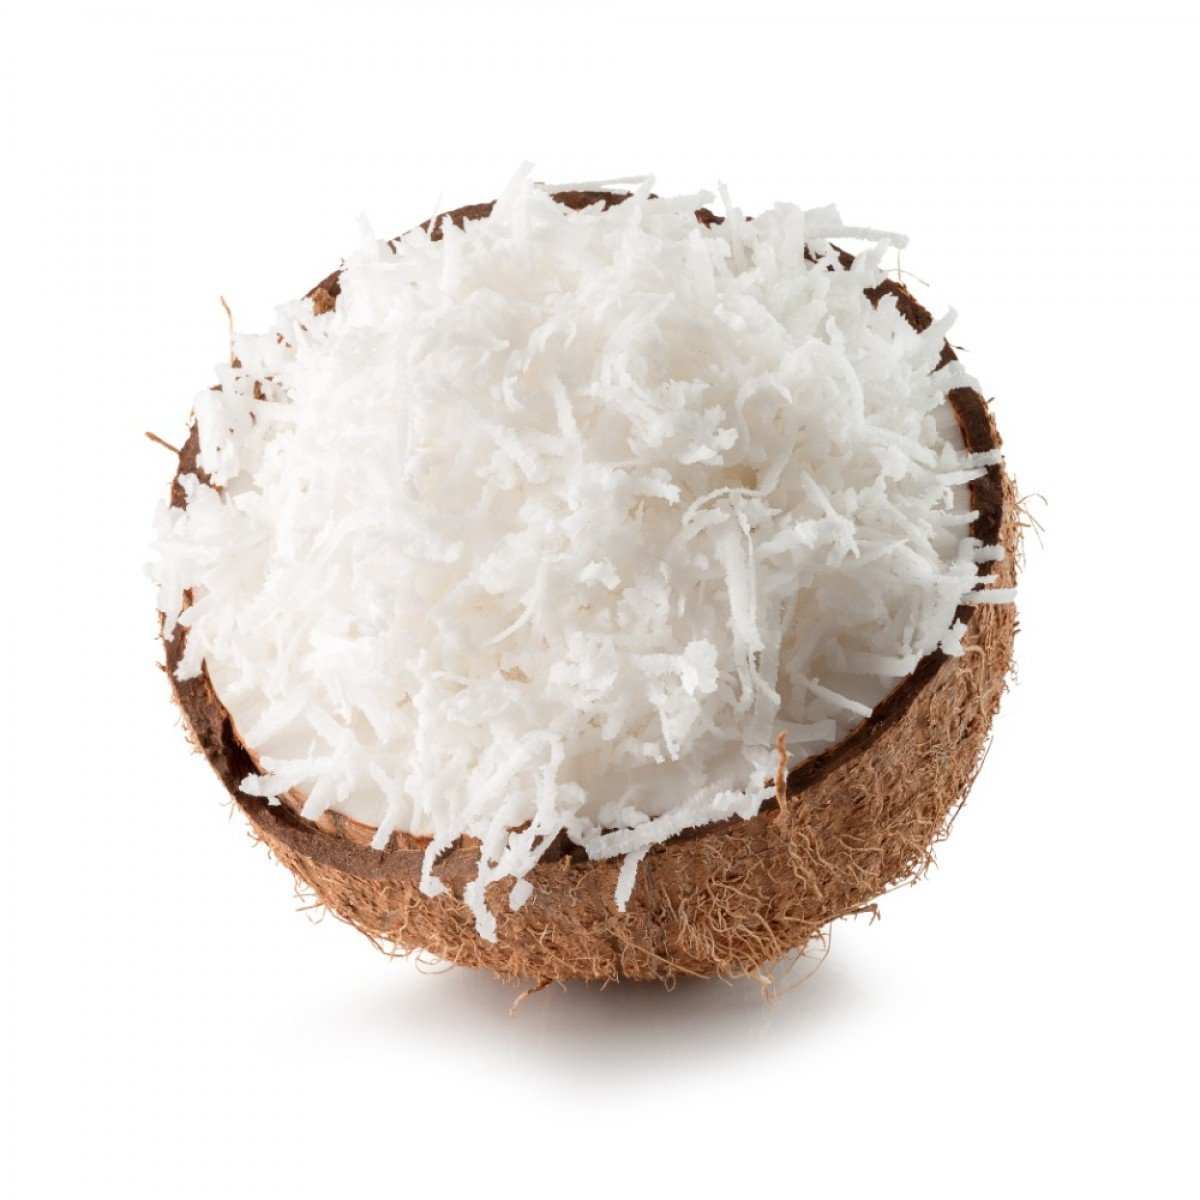 Dried Dessicated Coconut